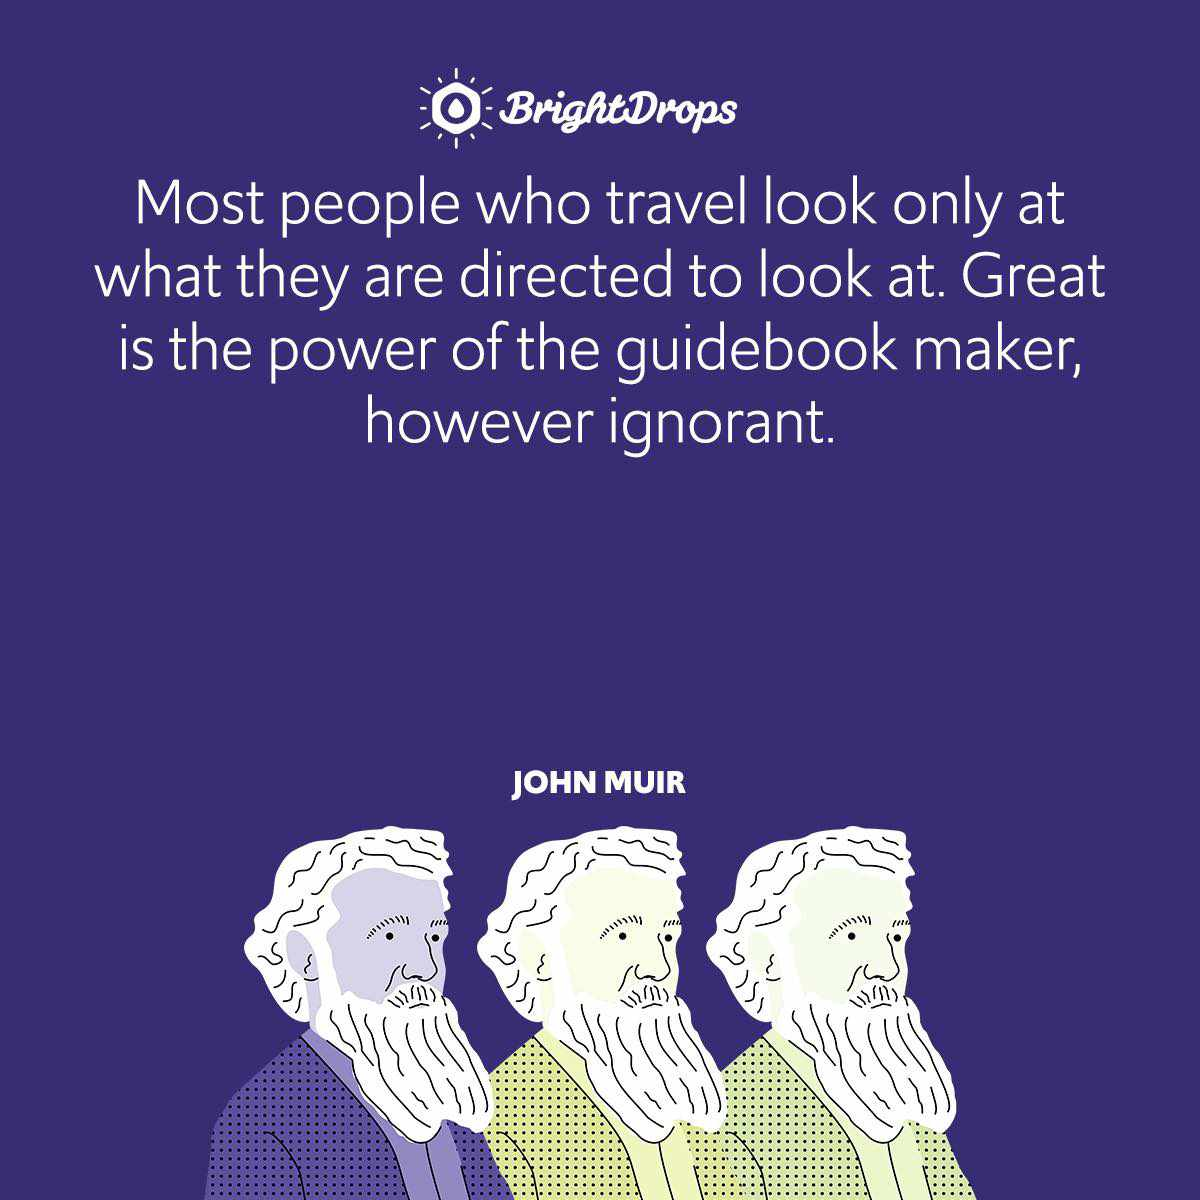 Most people who travel look only at what they are directed to look at. Great is the power of the guidebook maker, however ignorant.